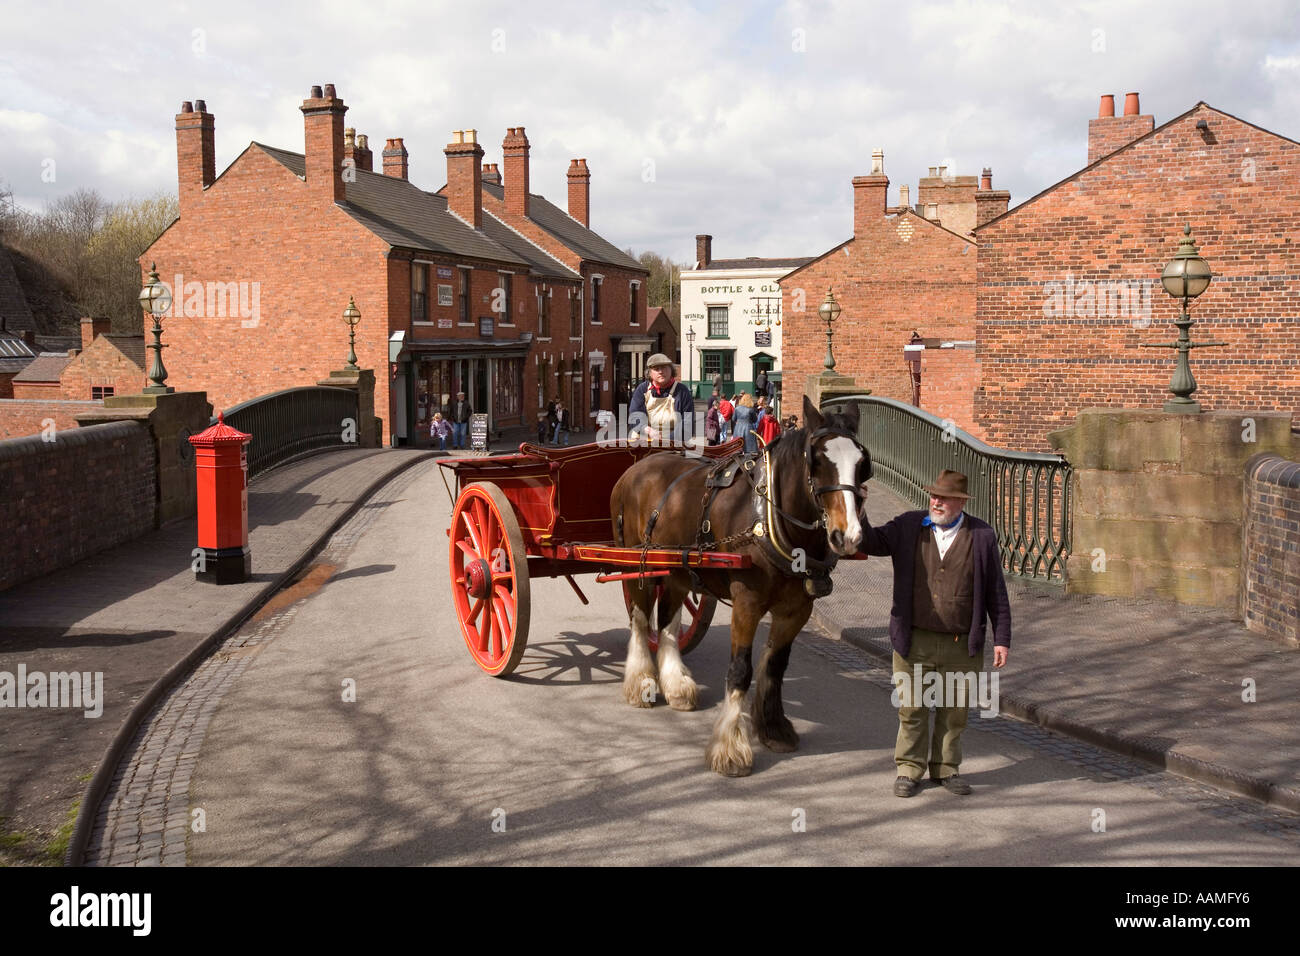 UK England West Midlands Dudley Black Country Museum shirehorse cart in the street - Stock Image